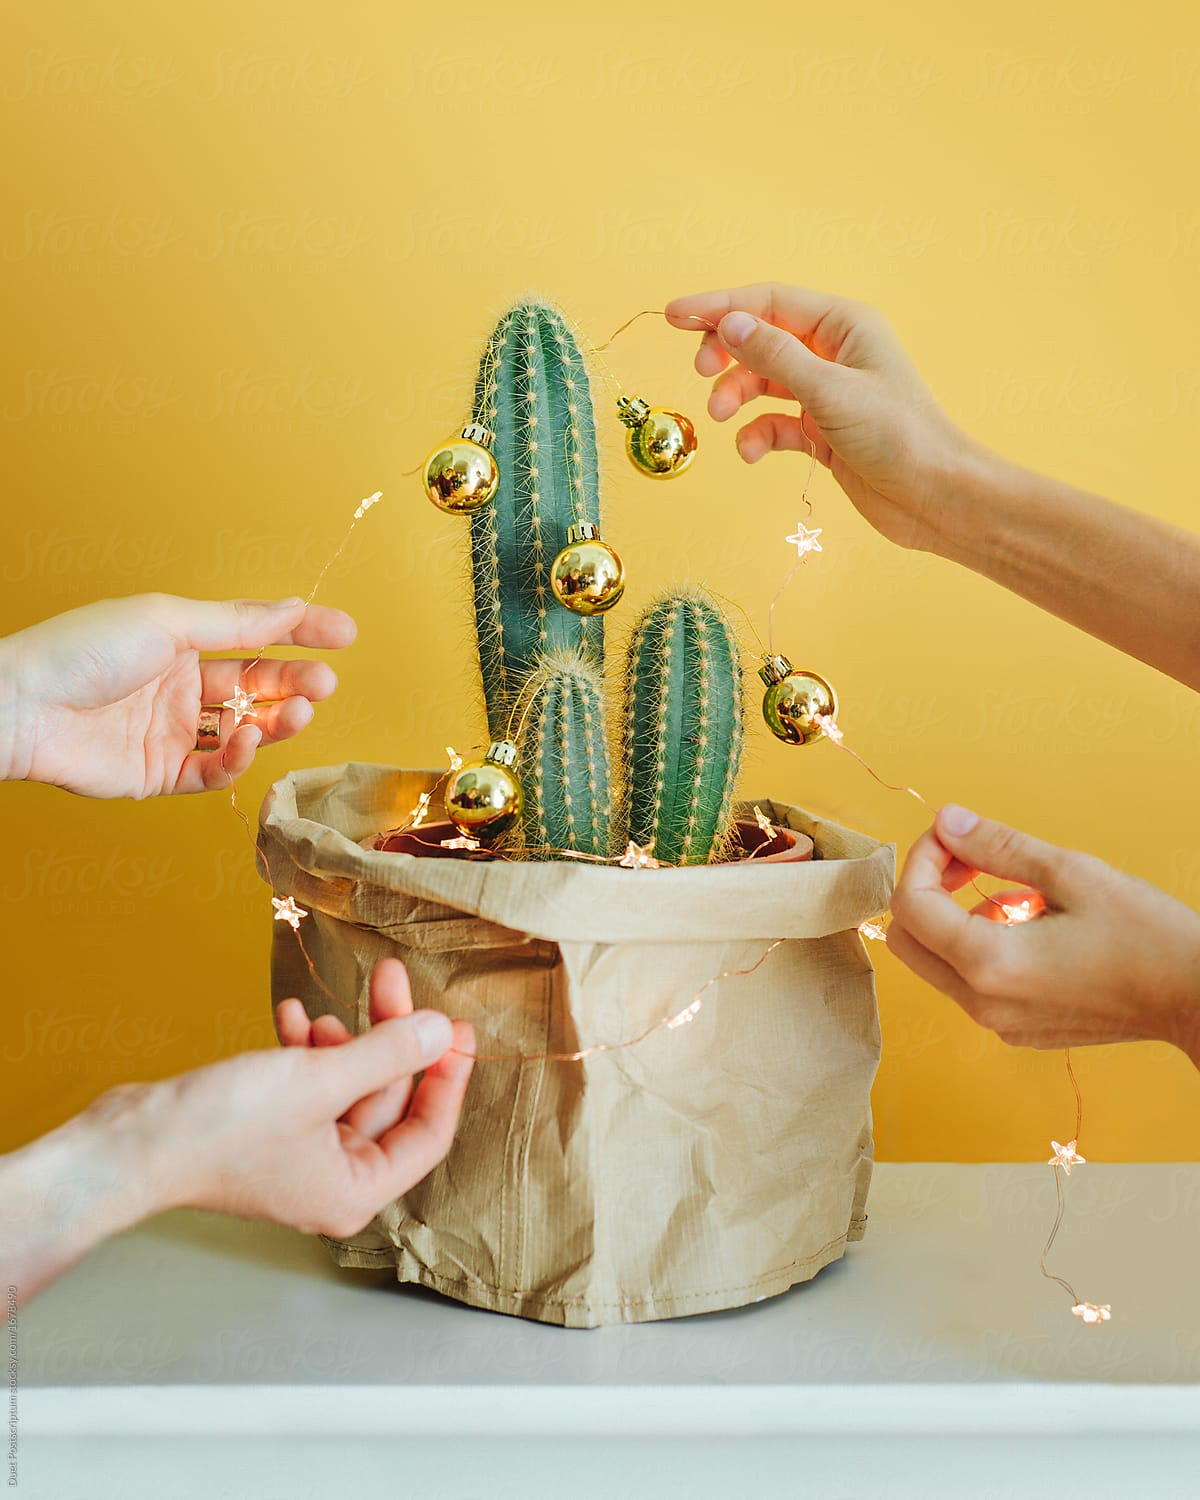 people decorating cactus with christmas garland by duet postscriptum for stocksy united - Decorating Cactus For Christmas